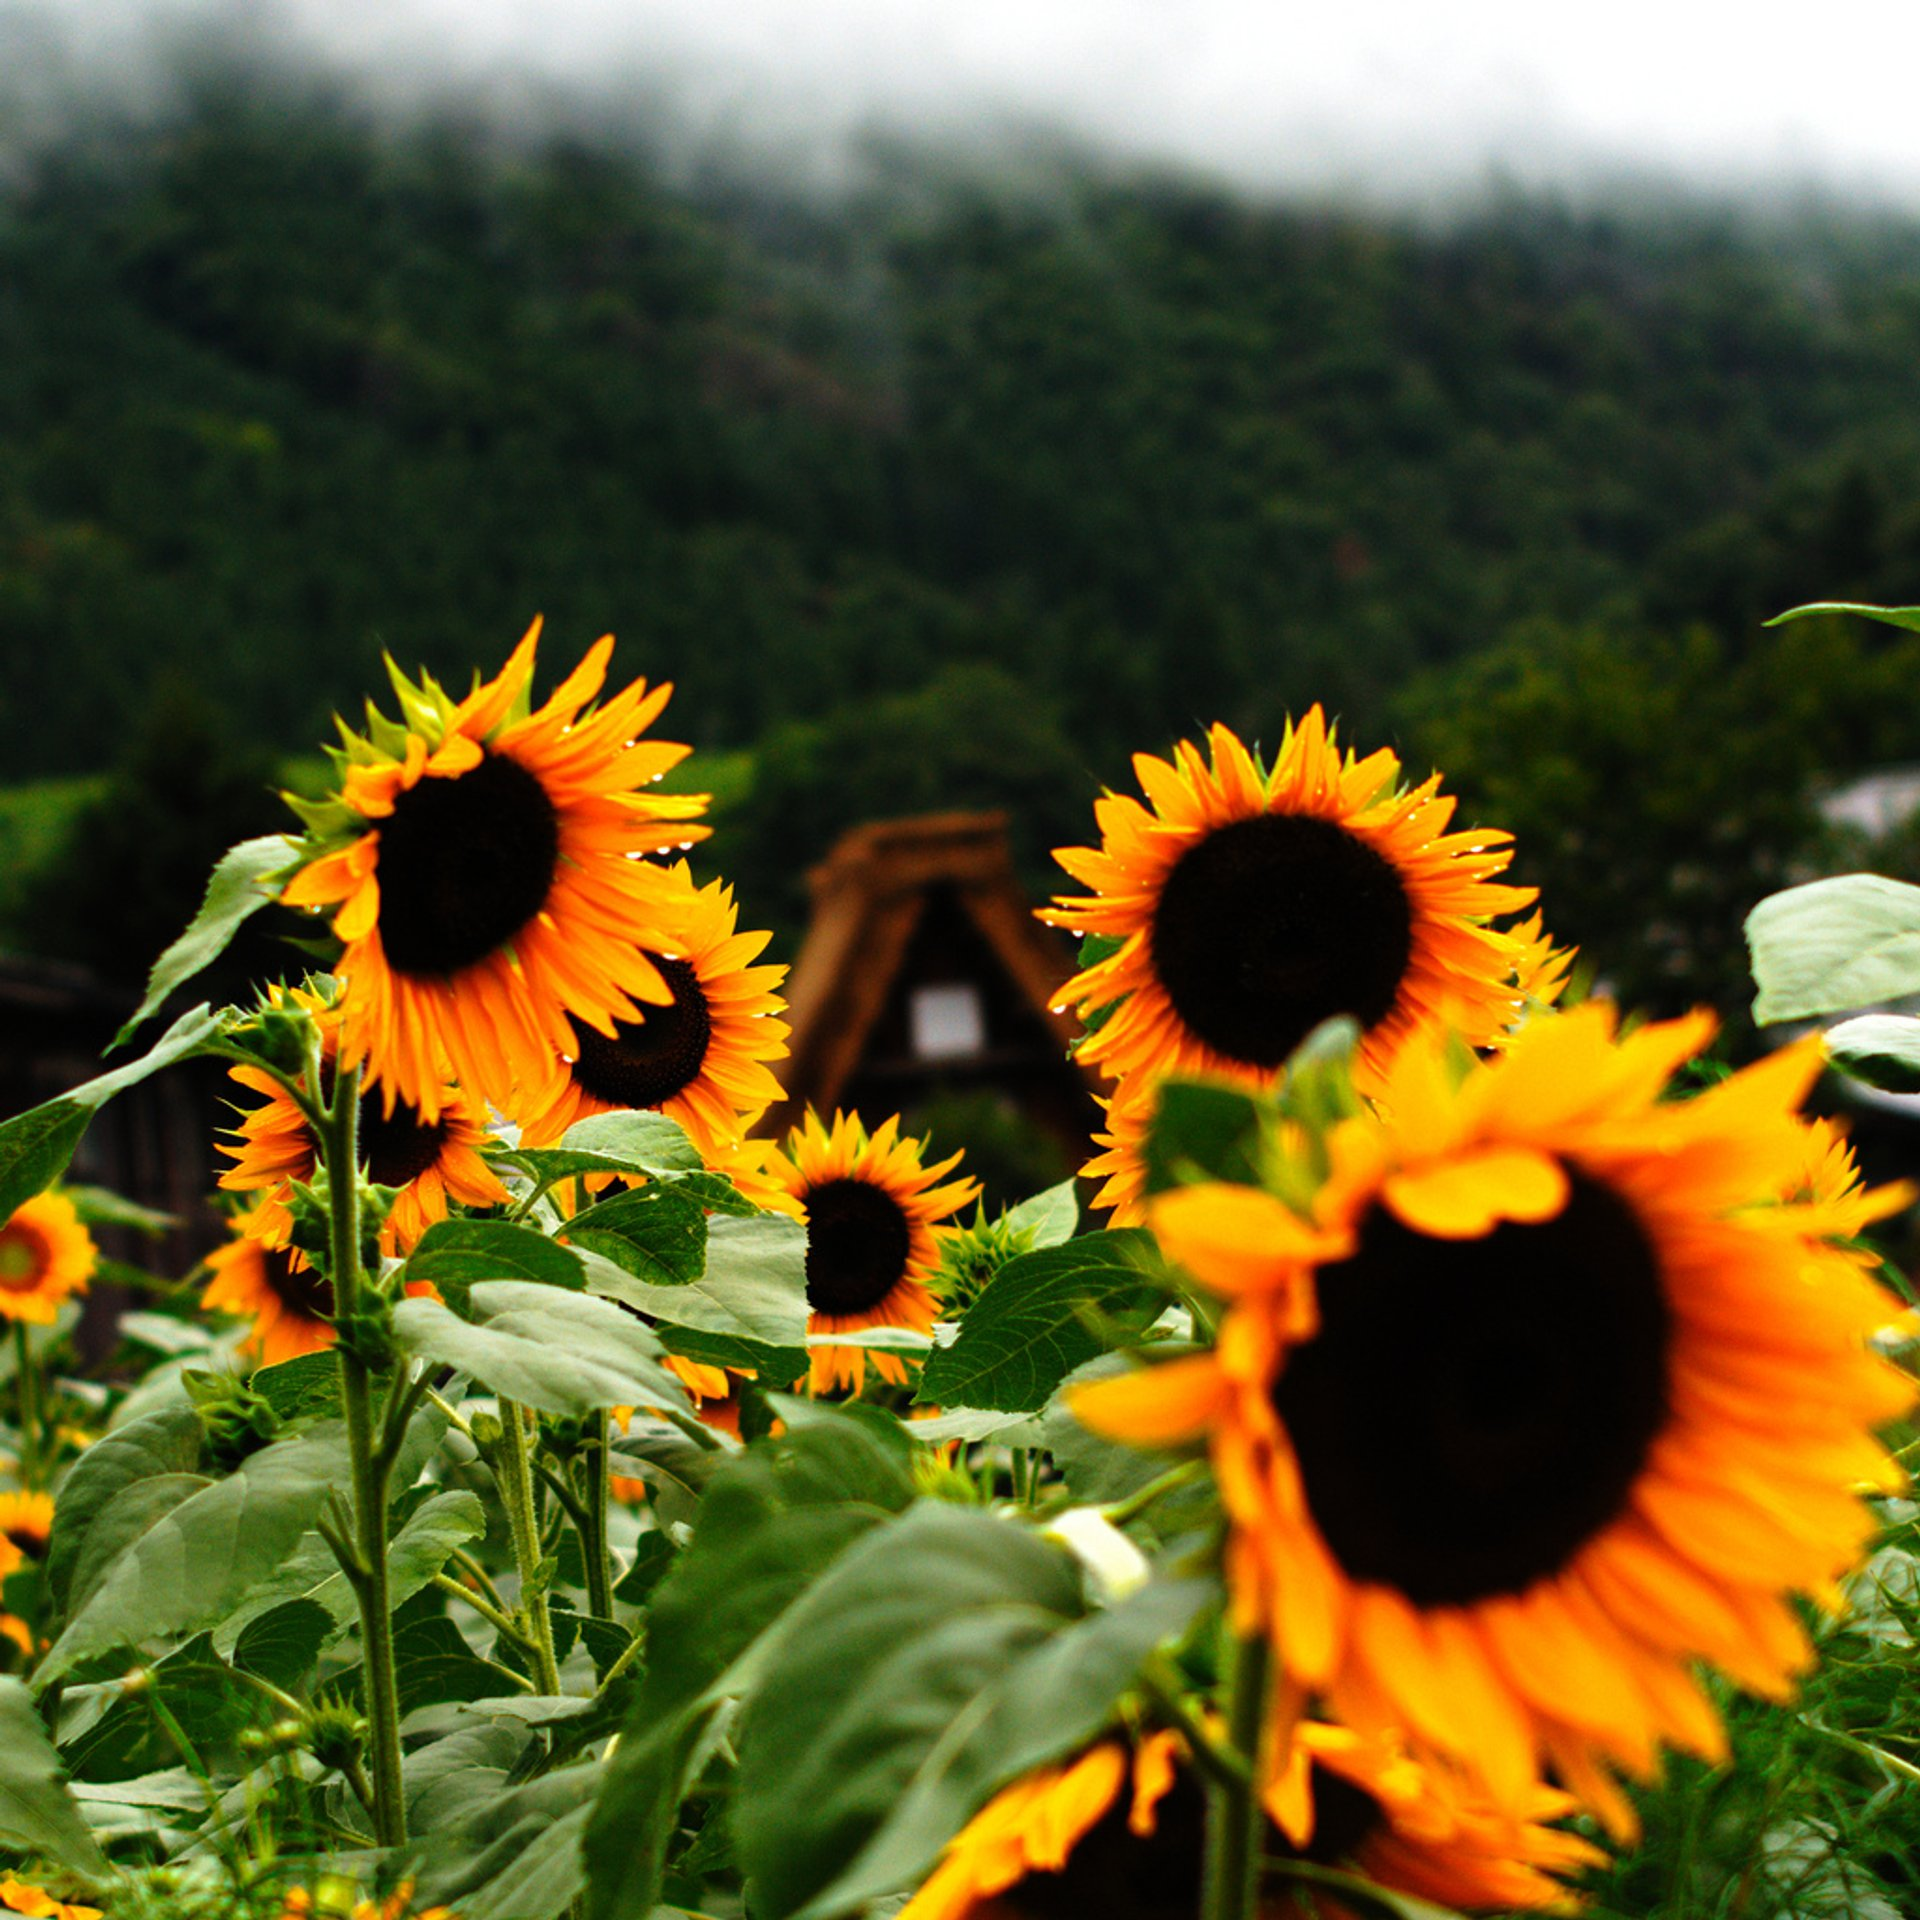 Sunflowers in  Shirakawamura, Gifu Prefecture, Japan 2020